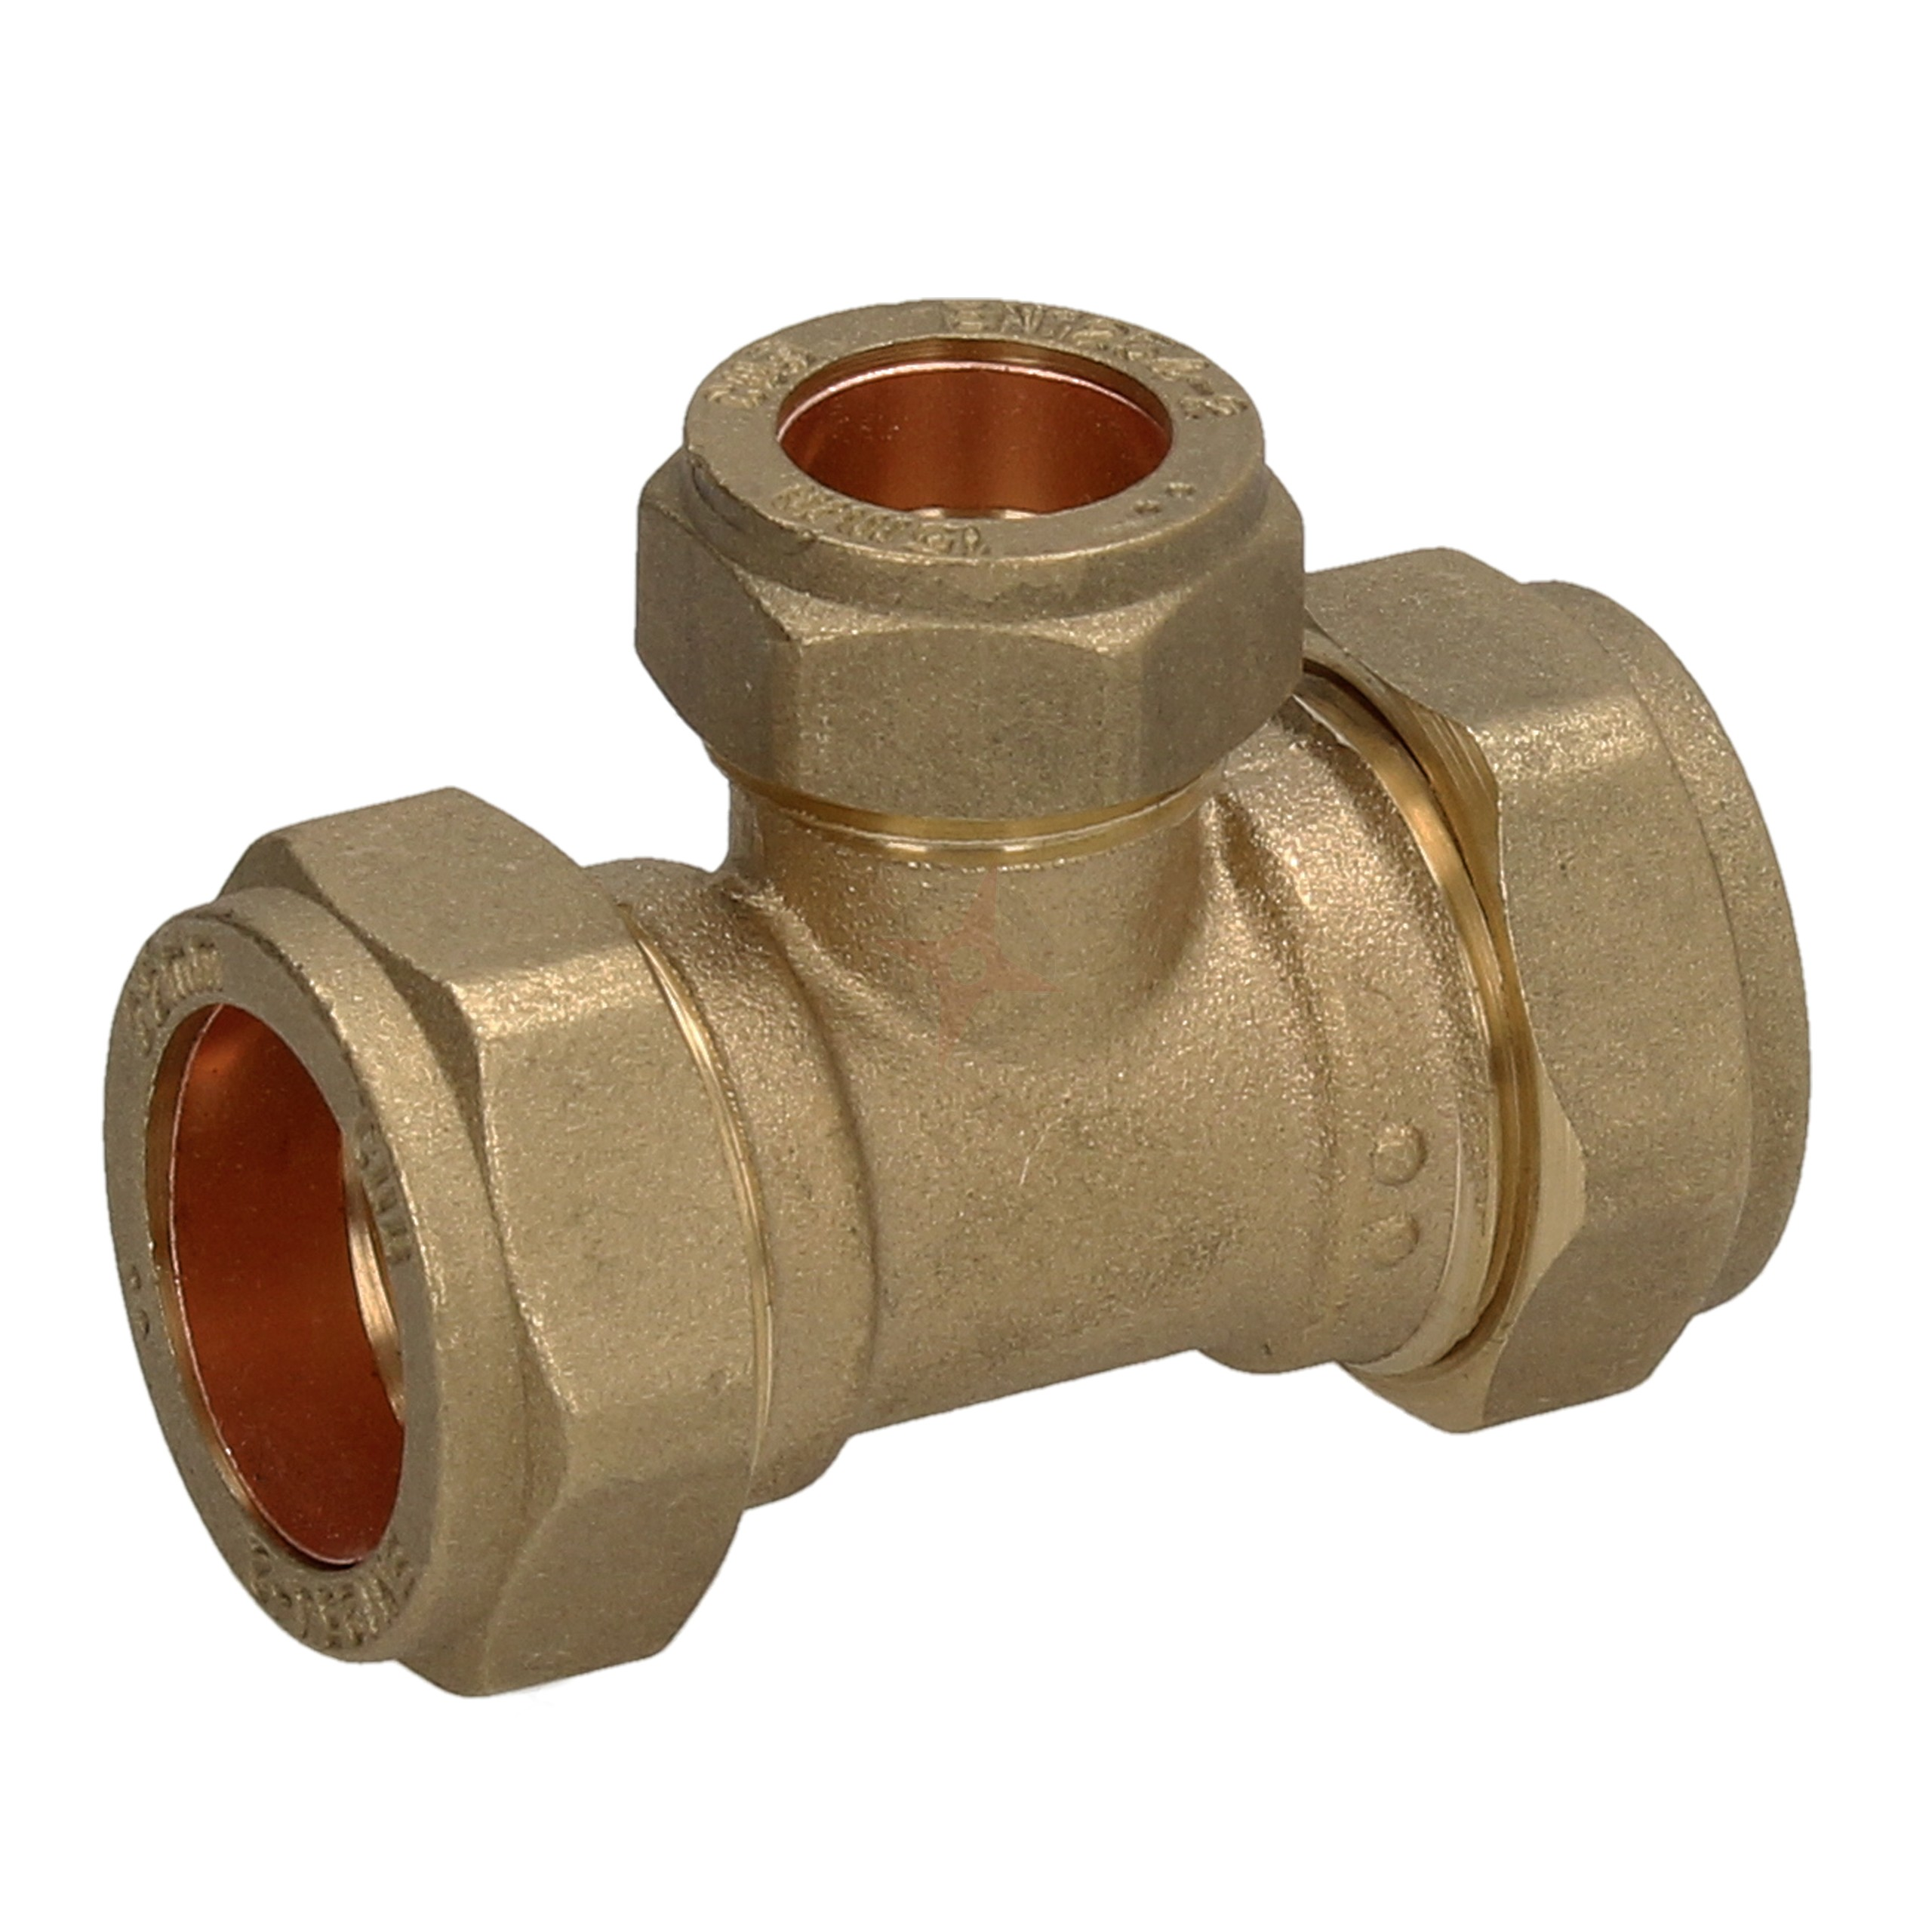 Compression 22mm x 22mm x 15mm Reducing Tee